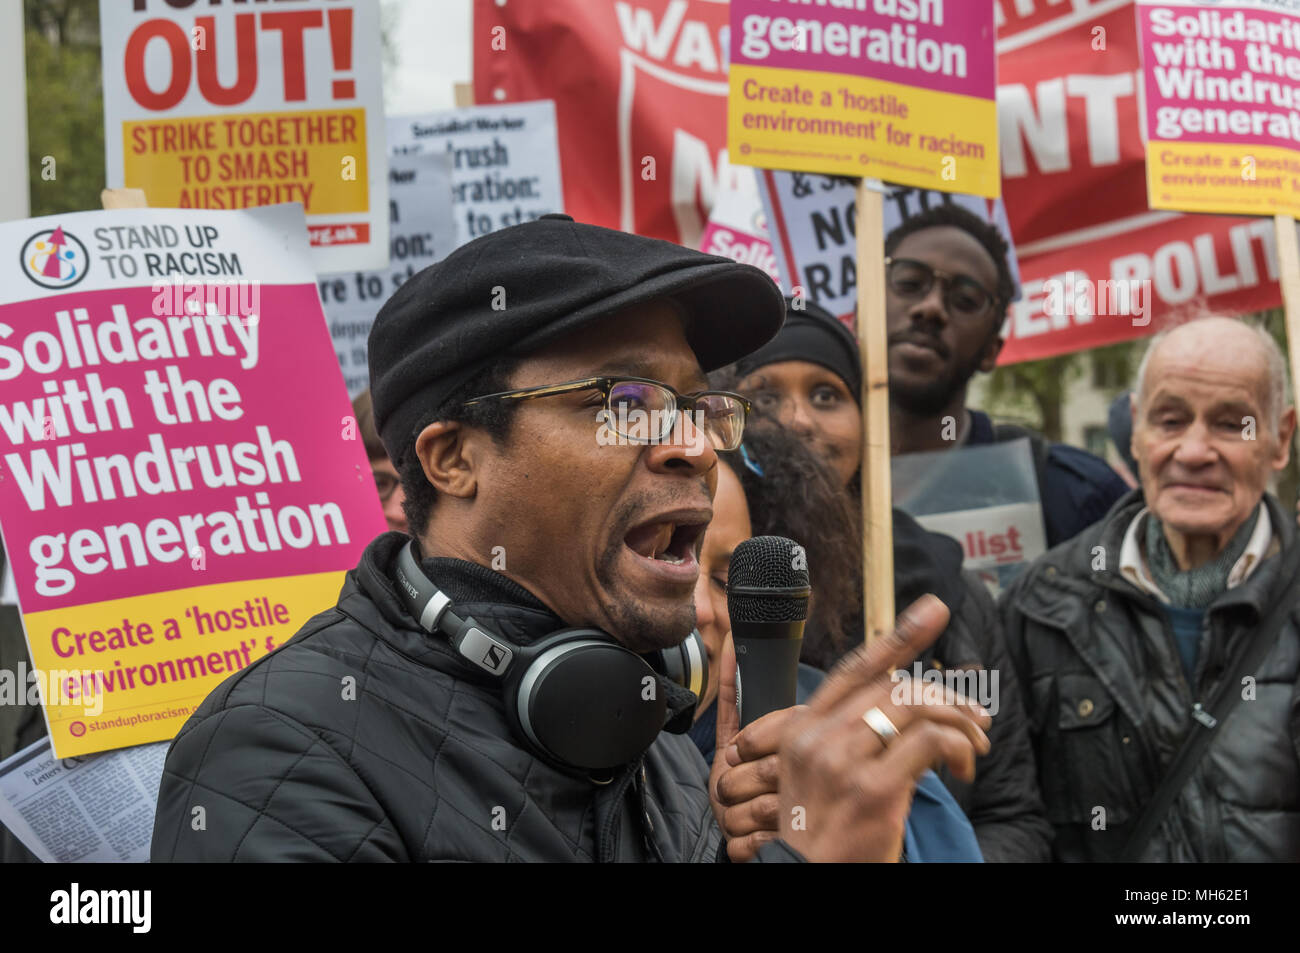 London, UK. 30th April 2018. Brian Richardson of Stand Up To Racism speaks at the protest in support of the petition calling for an end to the deportations of migrants in the 'Windrush generation' who arrived in Britain between 1948 and 1971. It calls on the government to change the burden of proof which means they are now required to prove their right to remain, and to provide compensation for any loss and hurt.. re for many years, paying taxes and raising families h Credit: Peter Marshall/Alamy Live News - Stock Image